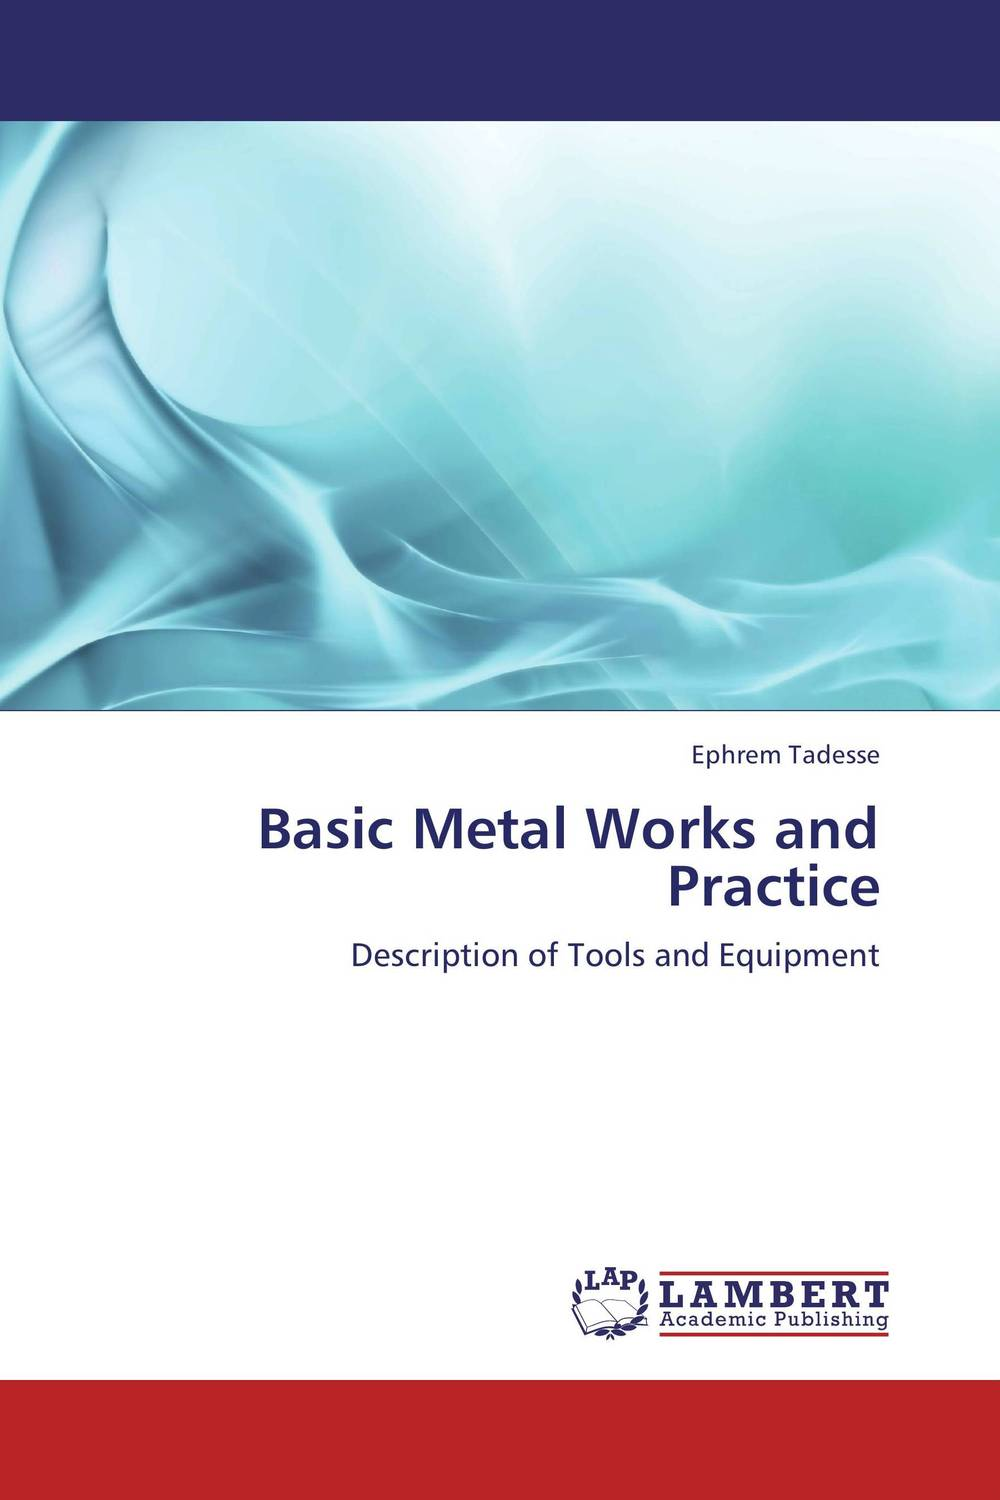 Basic Metal Works and Practice link for tractor parts or other items not found in the store covers the items as agreed